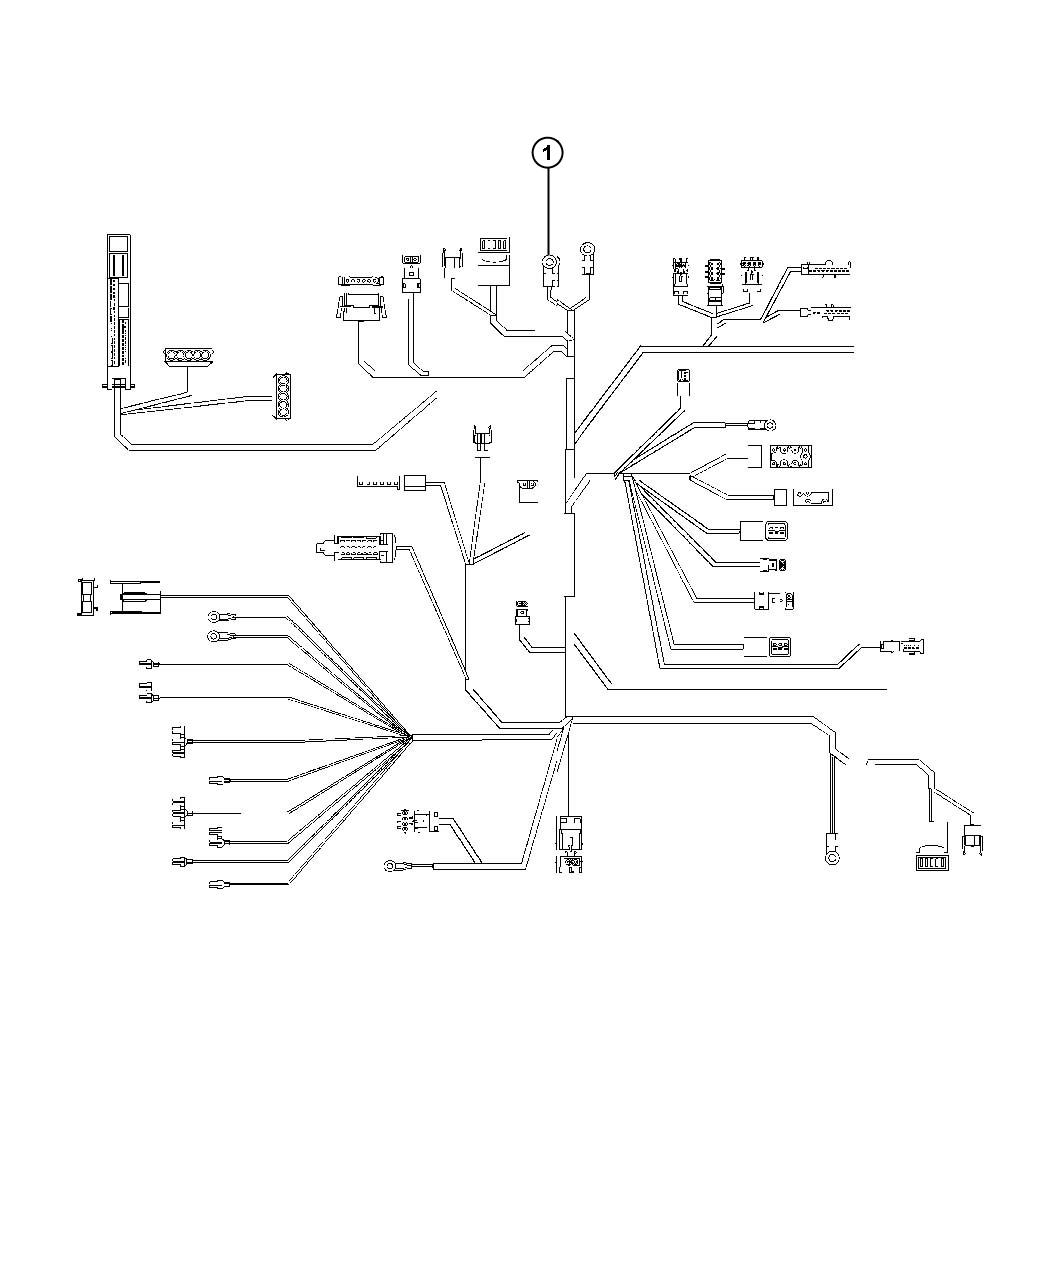 2006 Chrysler Crossfire Wiring Diagram